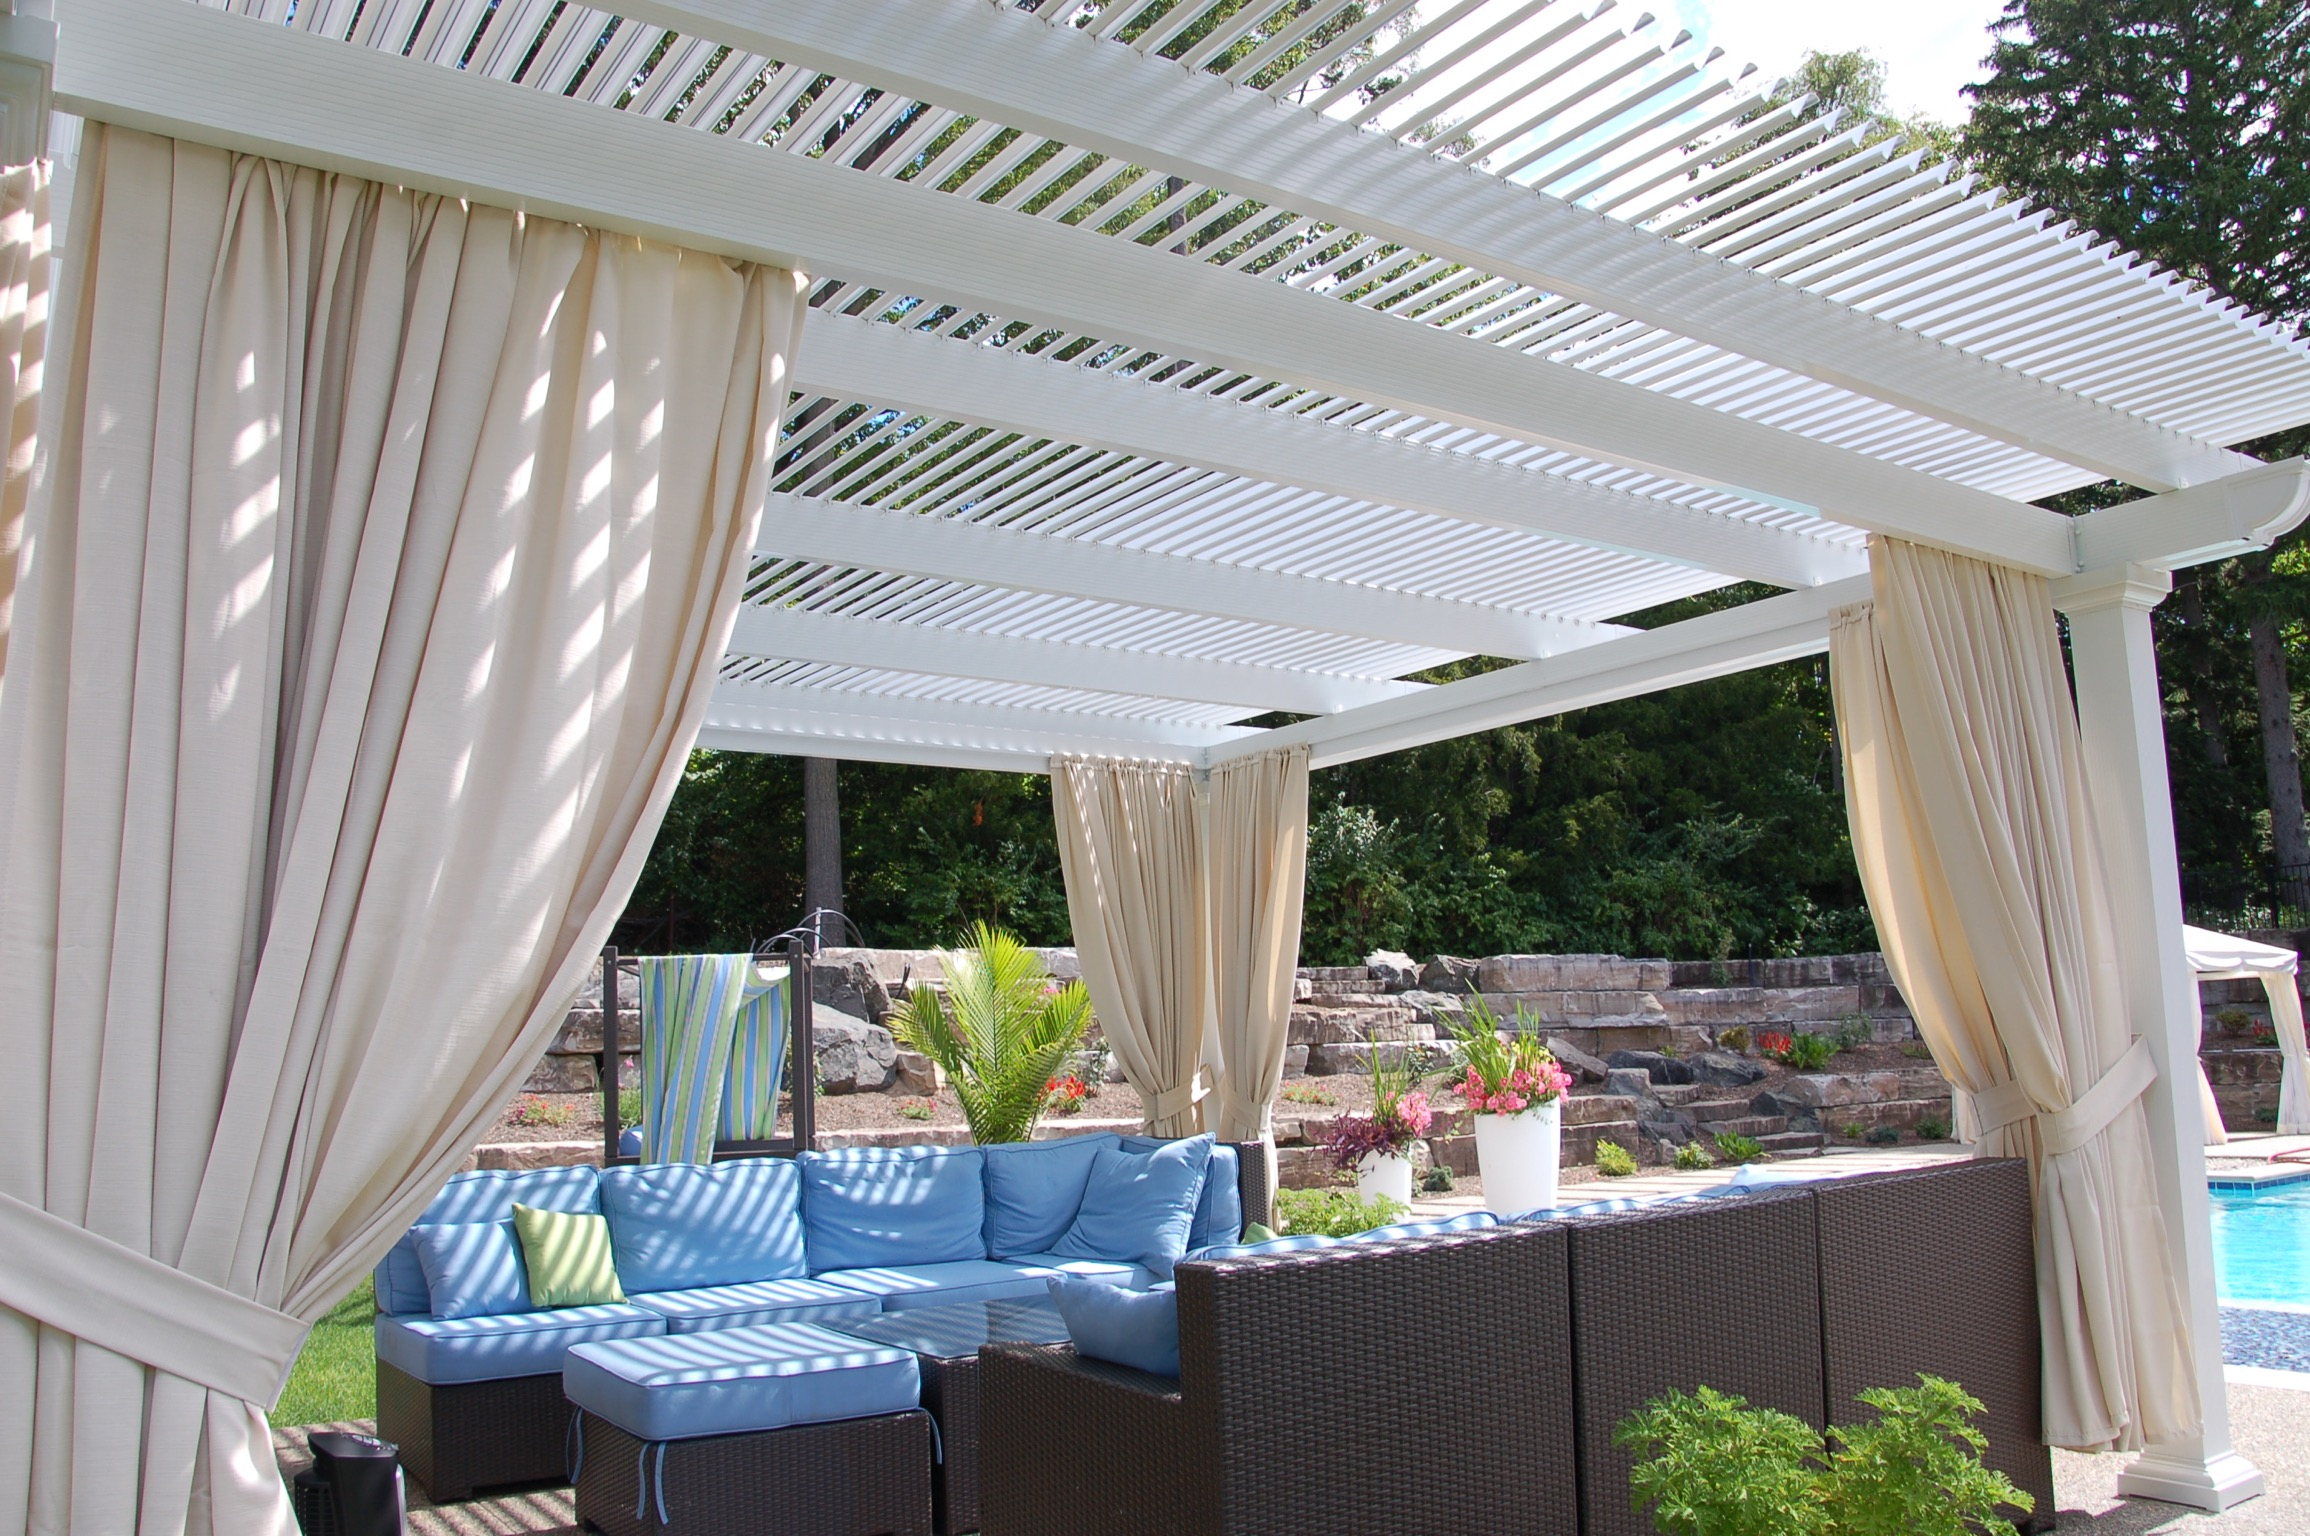 Gallery Pergolas And Patio Covers